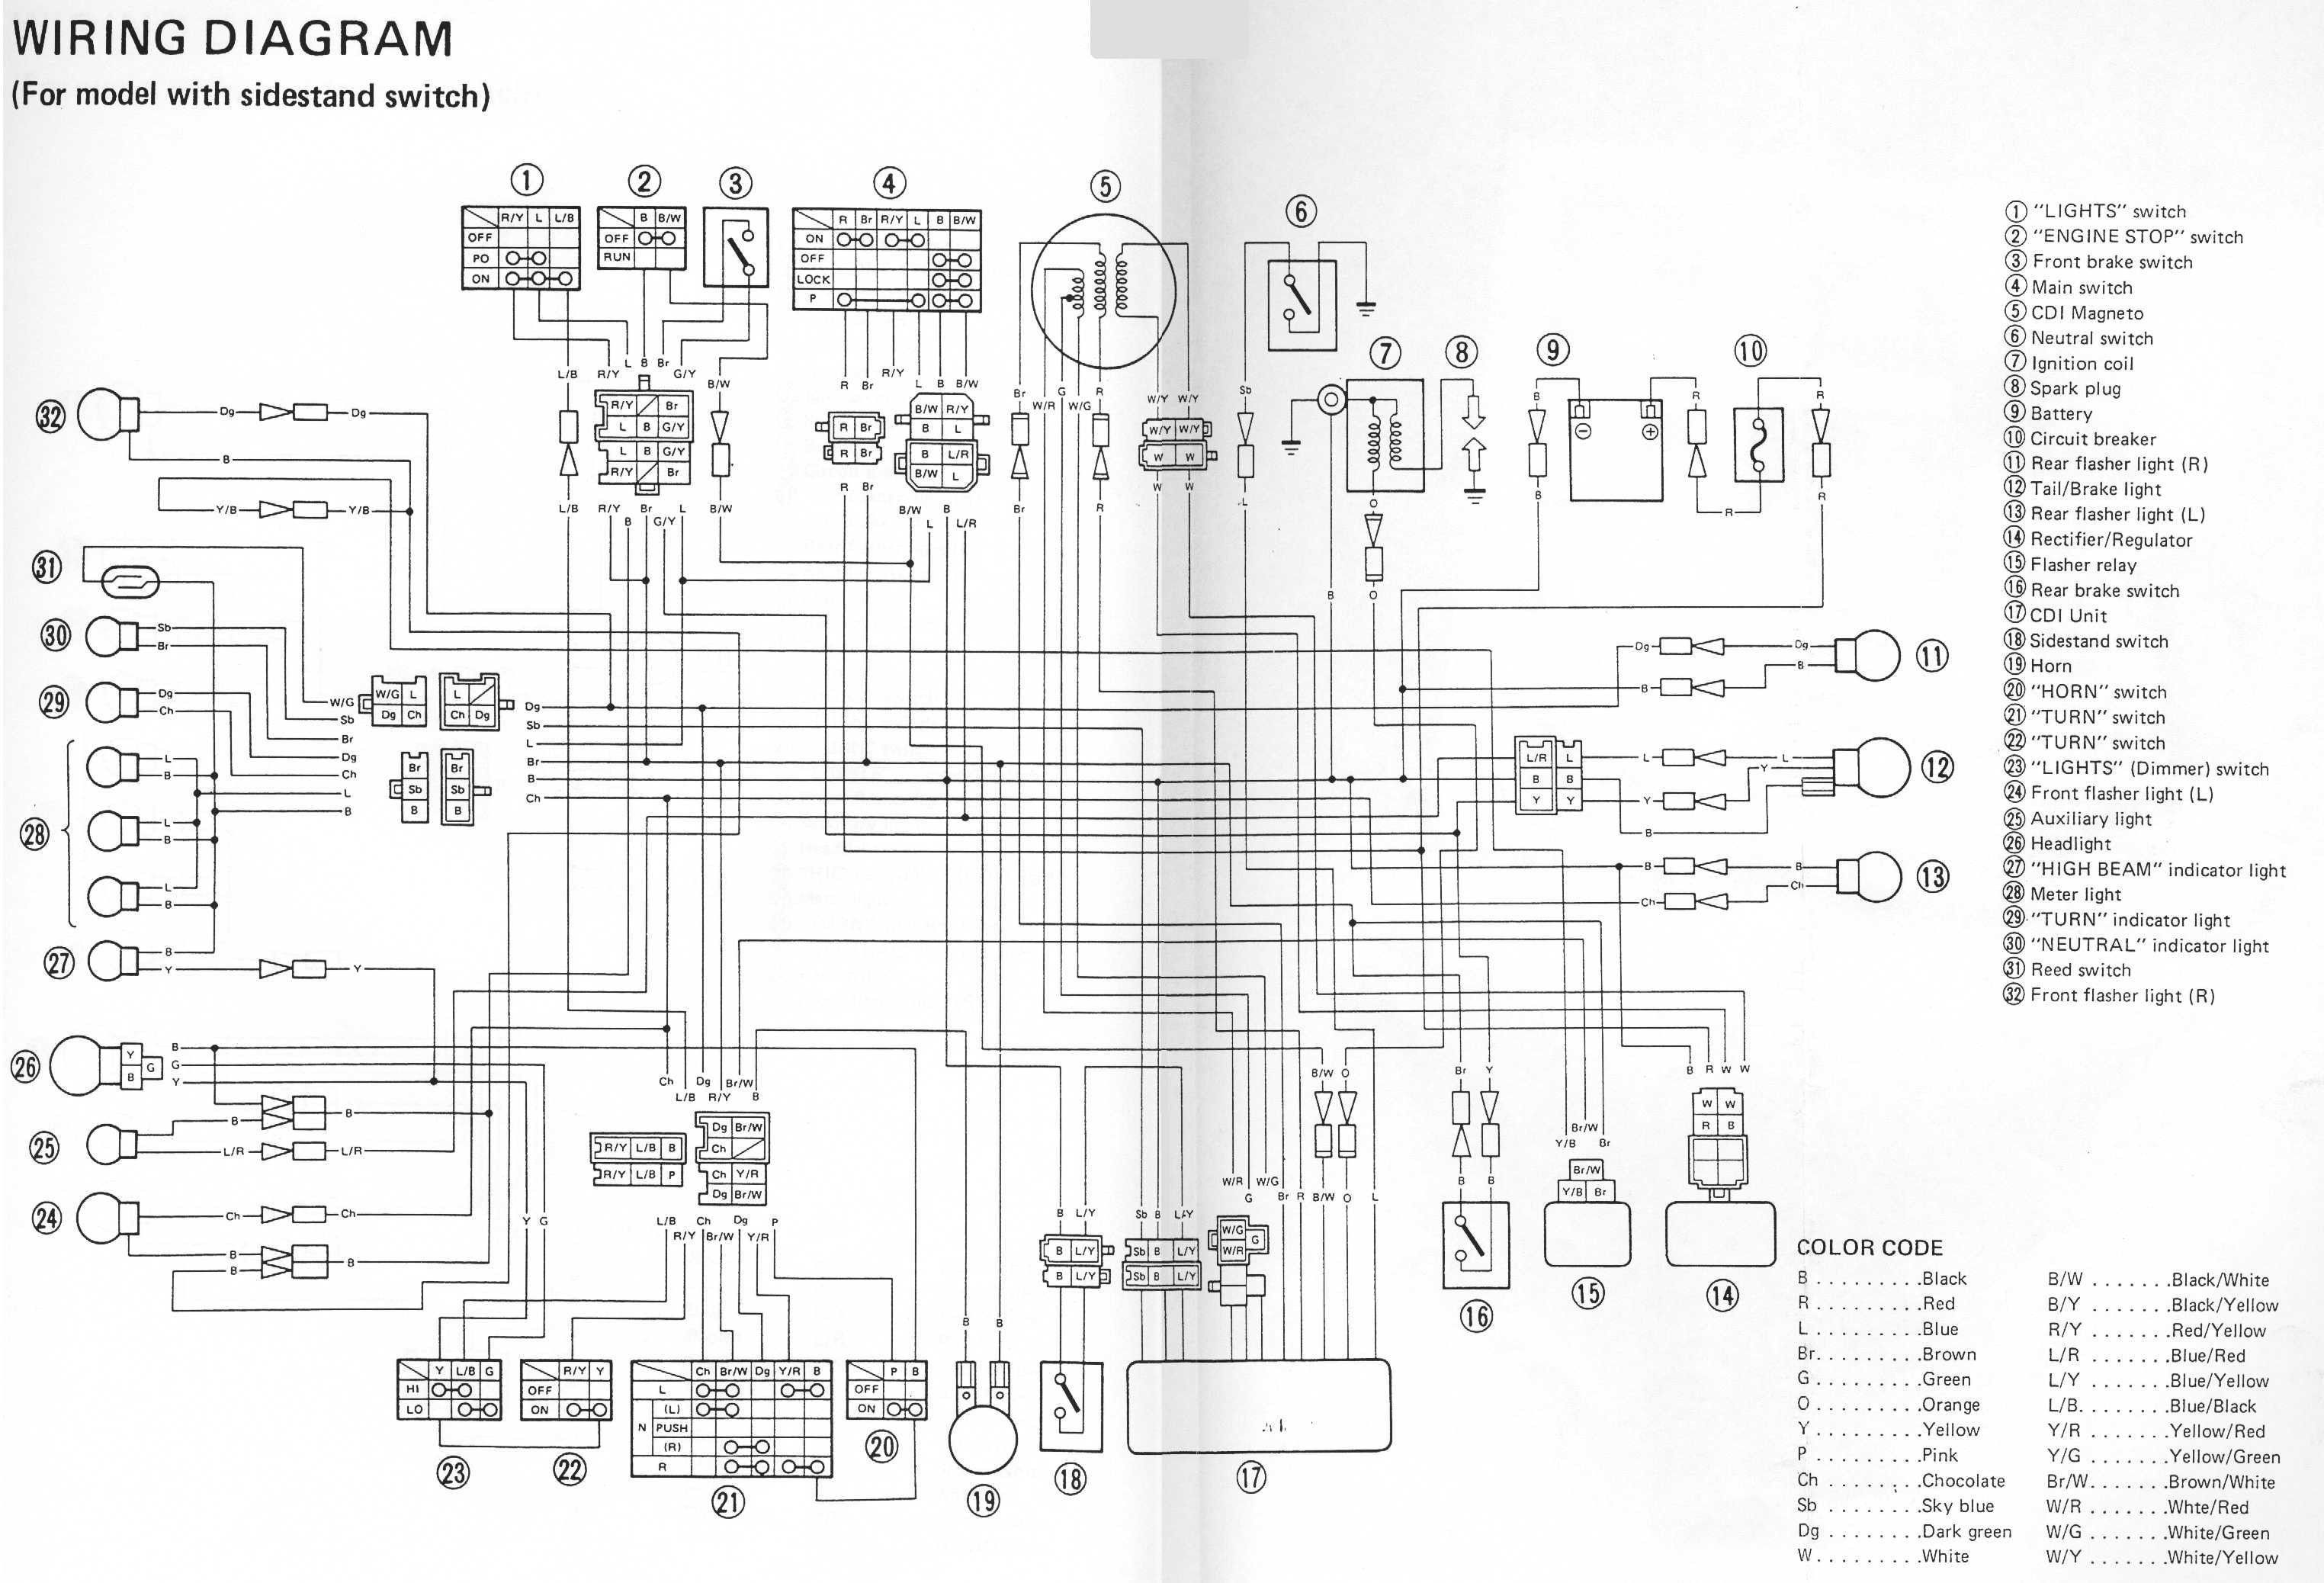 best of yamaha v star 650 wiring diagram in 2020 | yamaha v star, yamaha,  diagram  pinterest